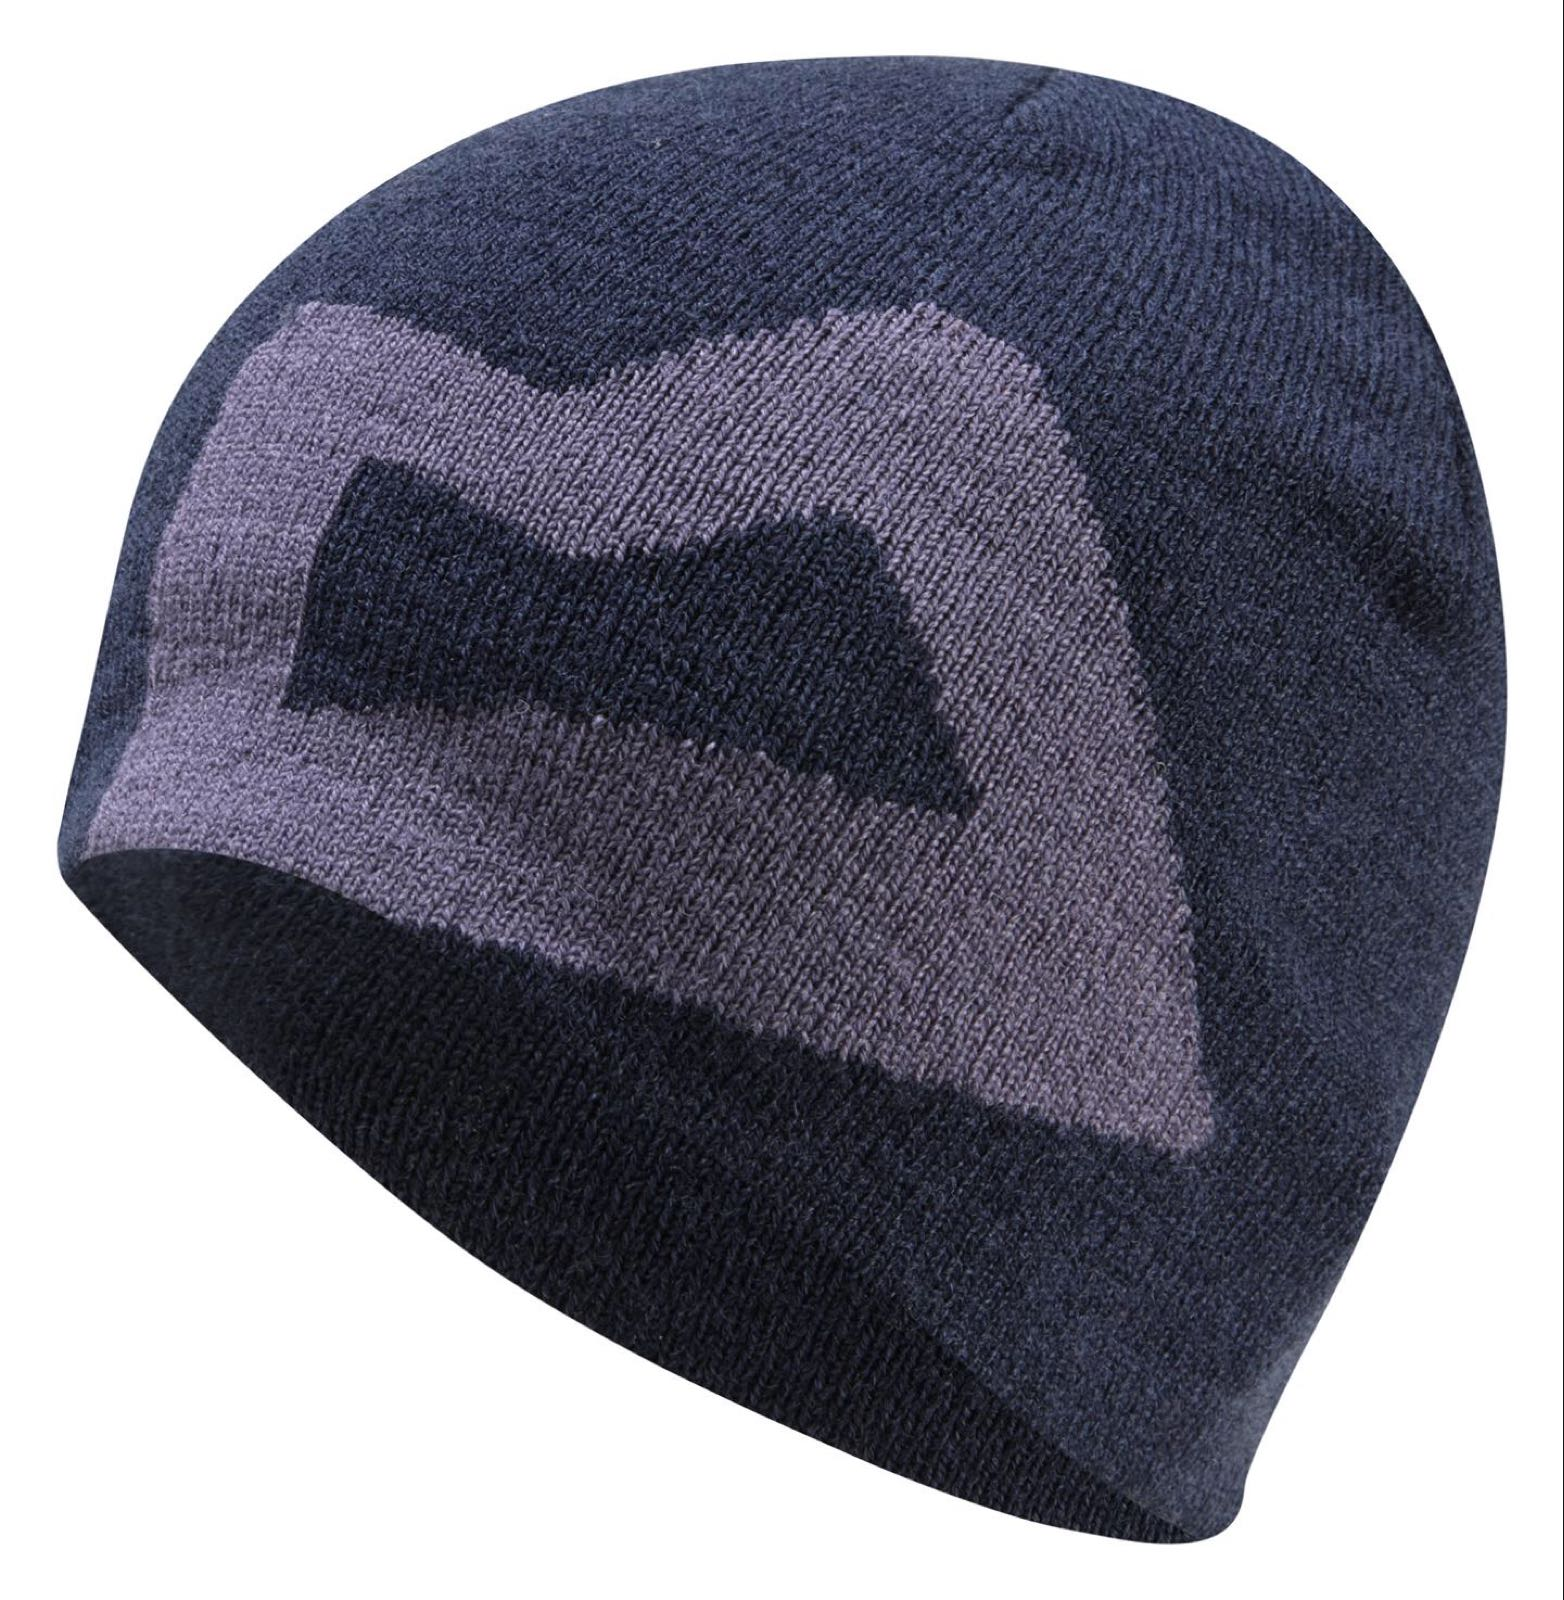 Branded knitted Wmns beanie